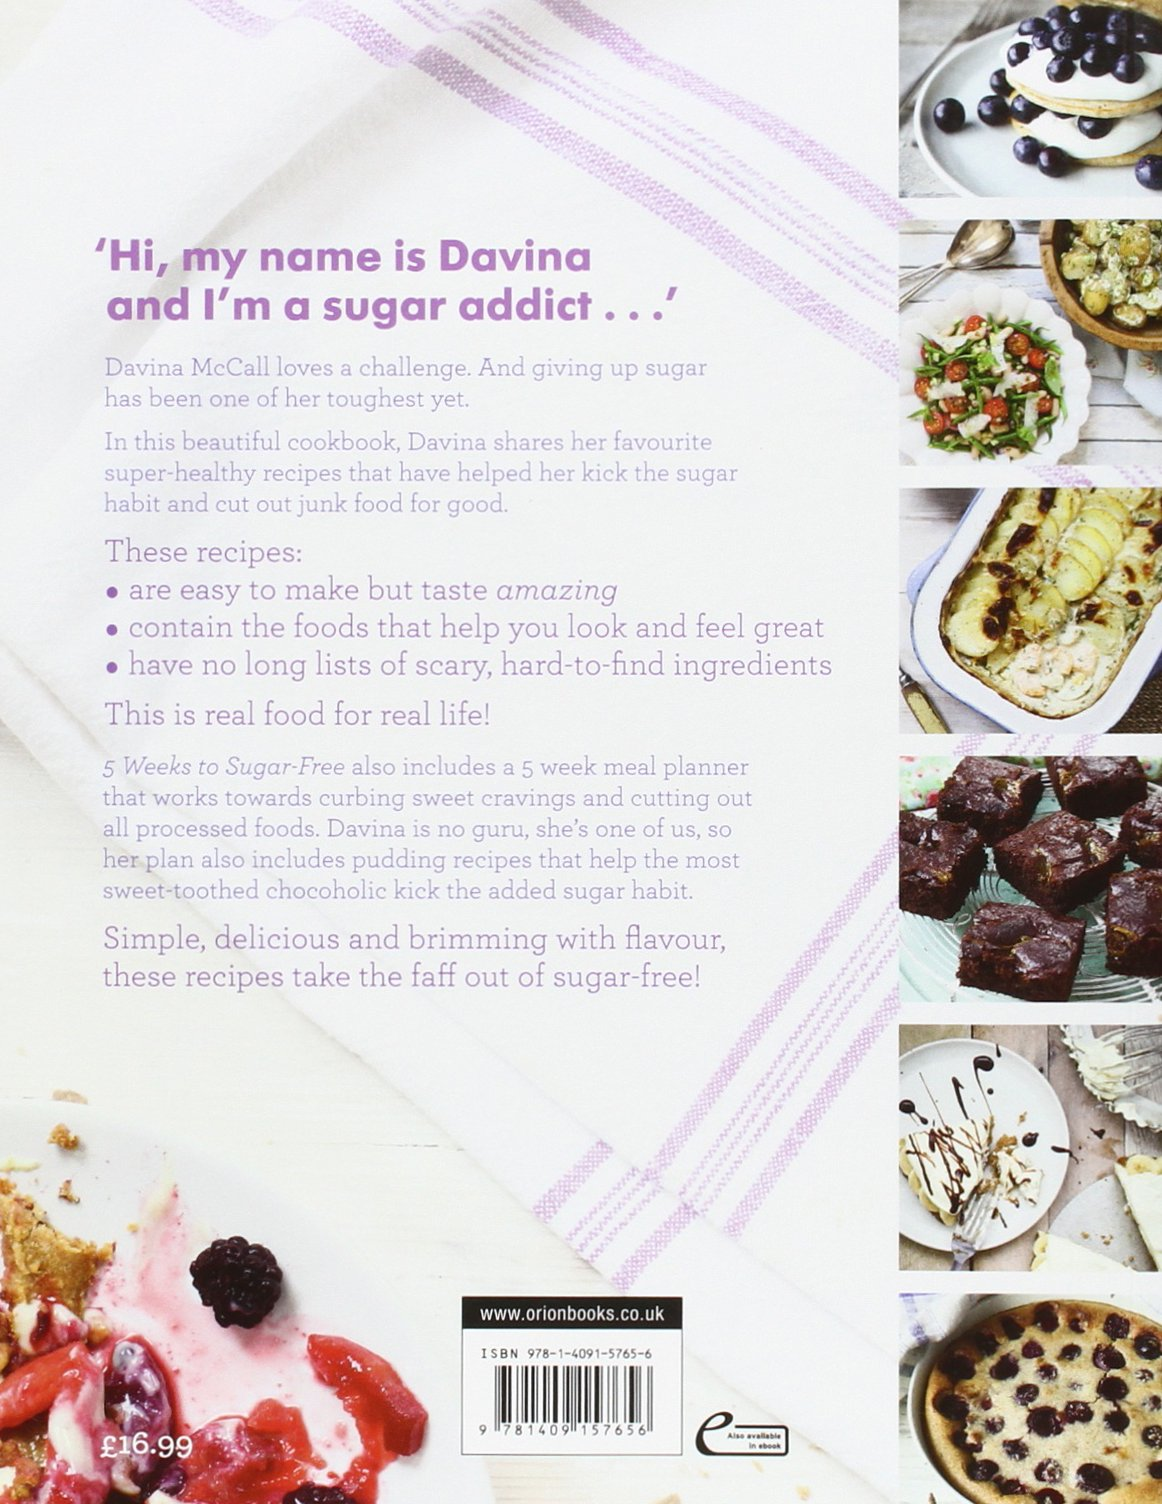 Davinas 5 weeks to sugar free yummy easy recipes to help you davinas 5 weeks to sugar free yummy easy recipes to help you kick sugar and feel amazing amazon davina mccall 9781409157656 books forumfinder Images